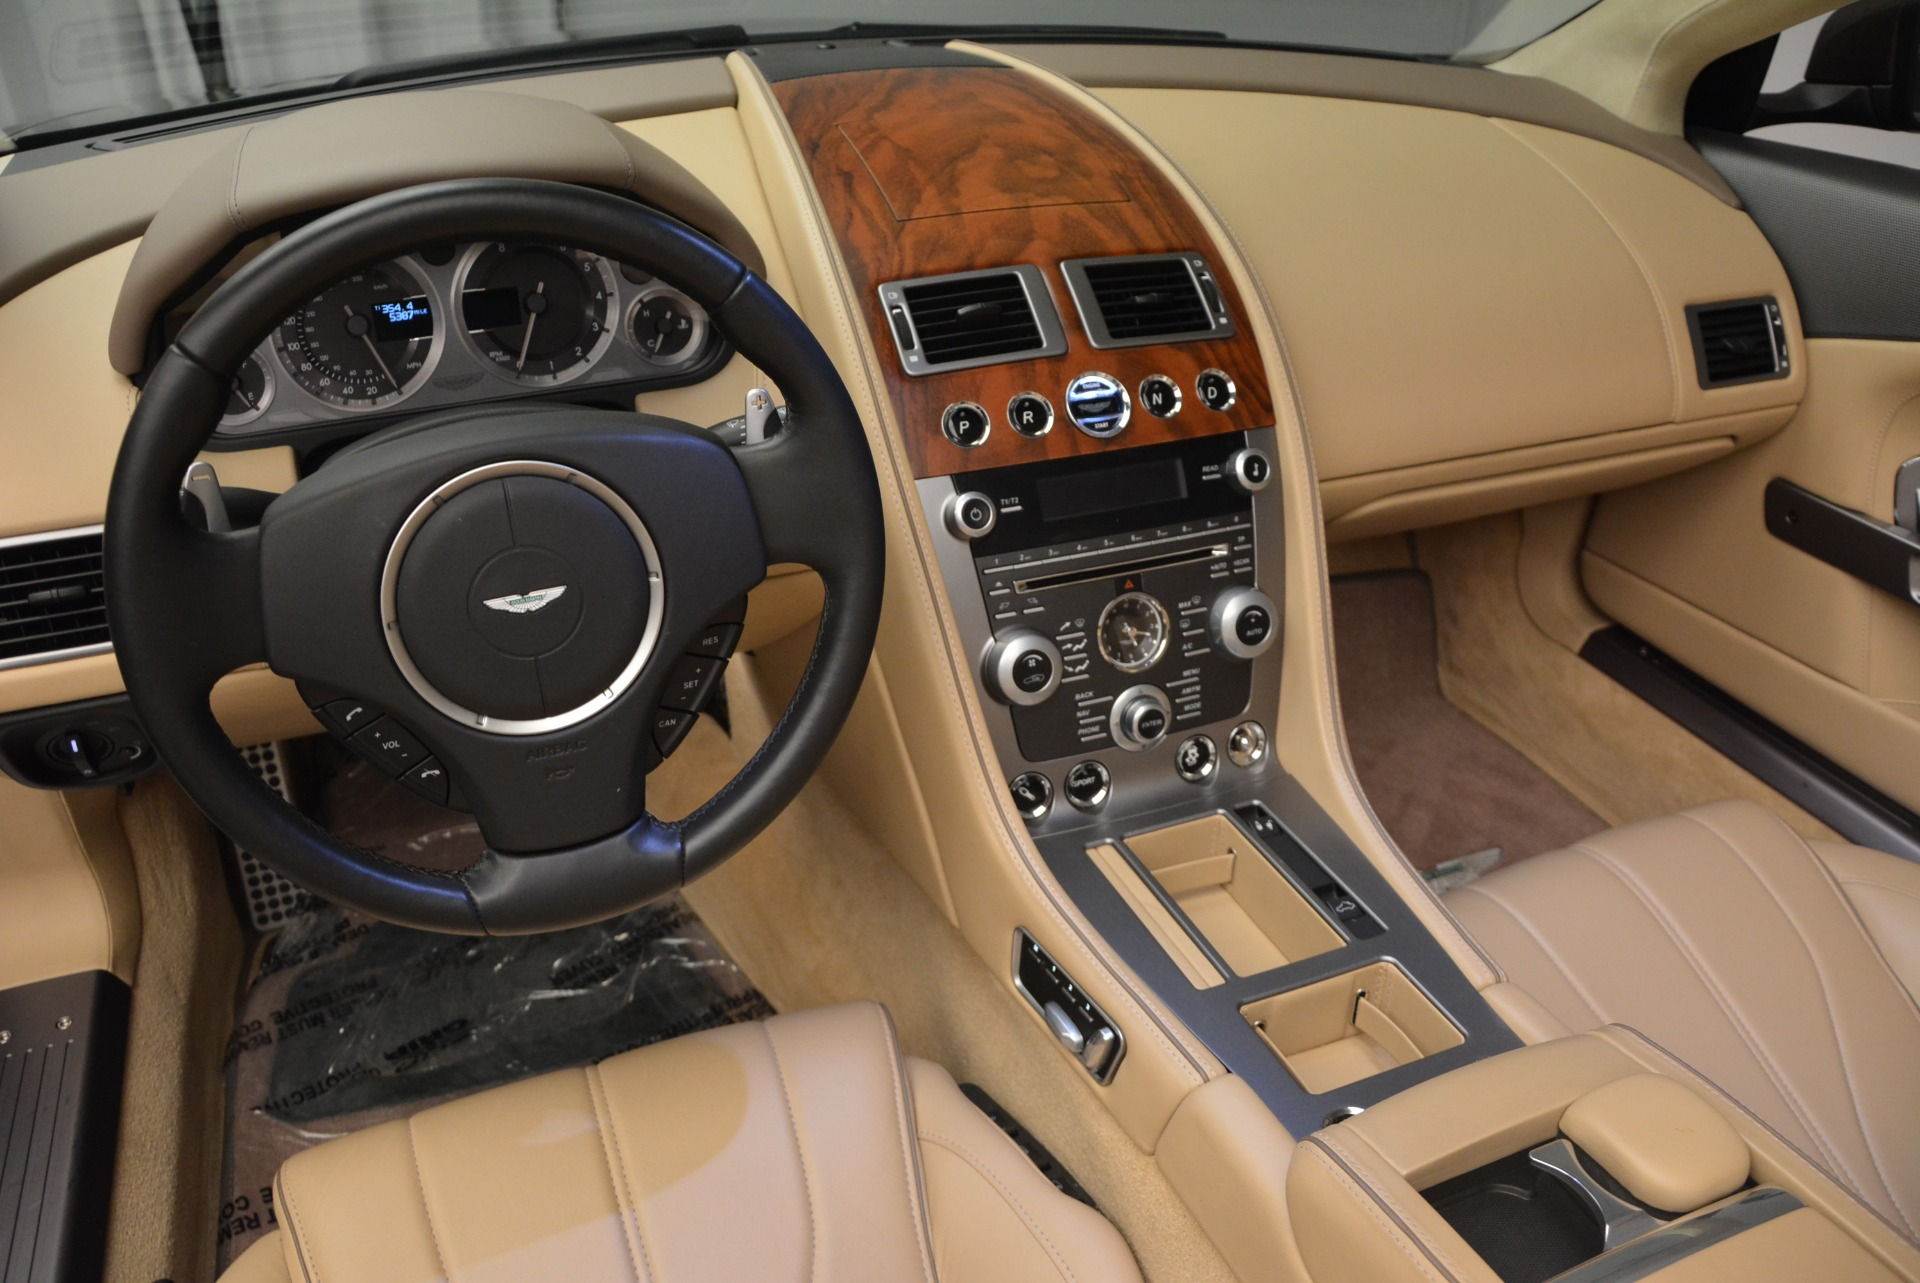 Used 2012 Aston Martin Virage Convertible For Sale In Westport, CT 3351_p22